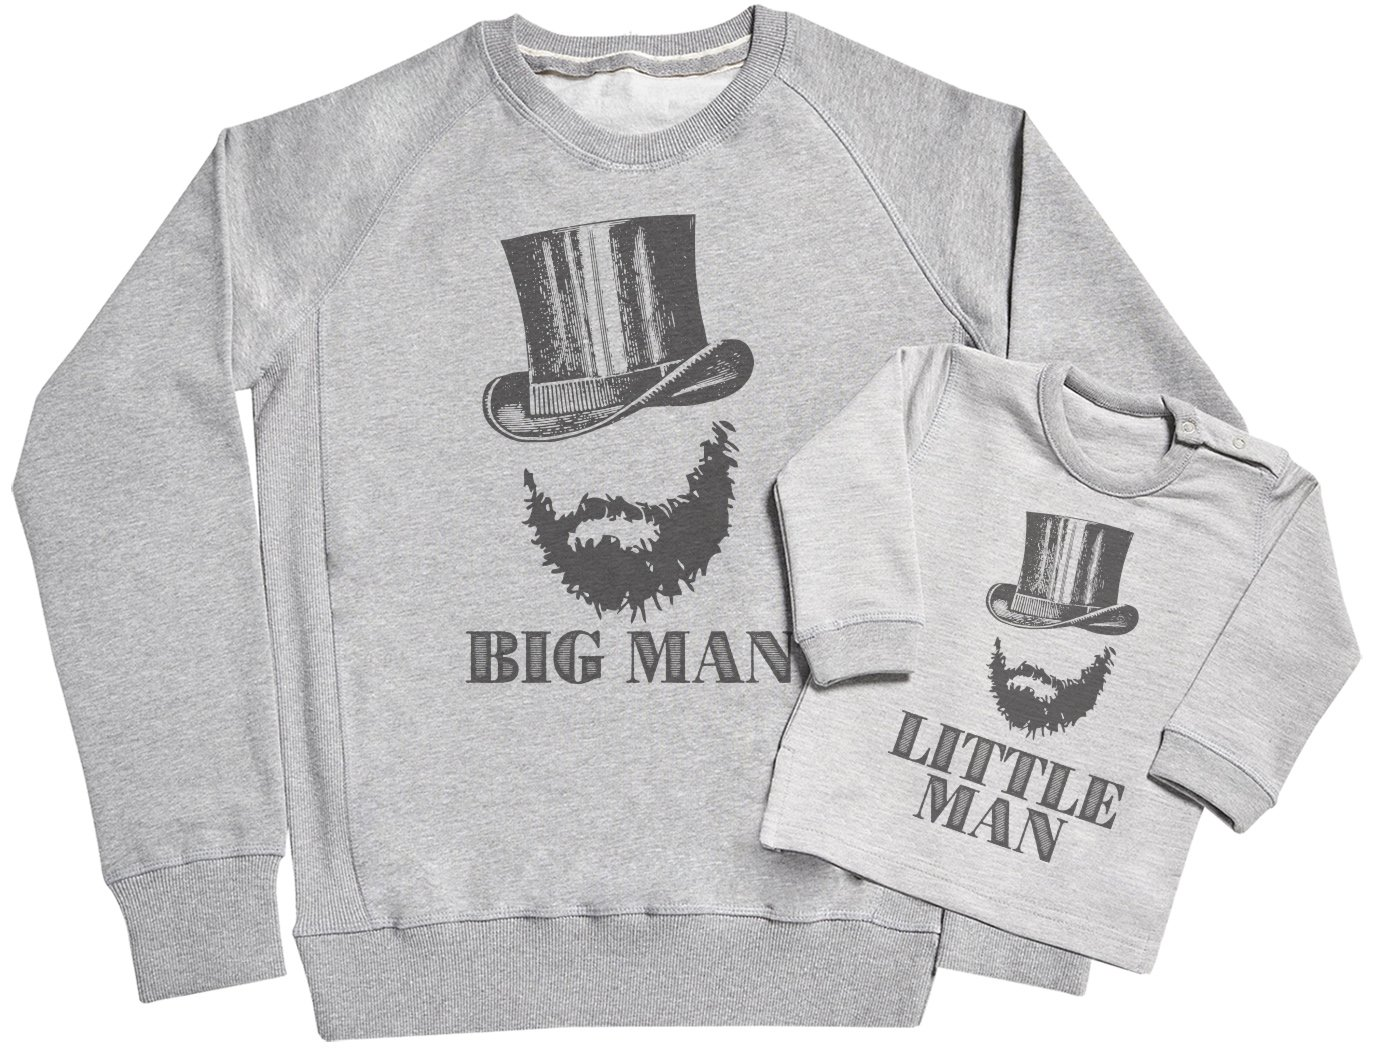 SR - Big Man & Little Man Father & Baby Sweatshirt Gift Set - Matching Sweater Dad & Baby Gift Set - Grey, Large & 0-6 Months by Spoilt Rotten Sweaters